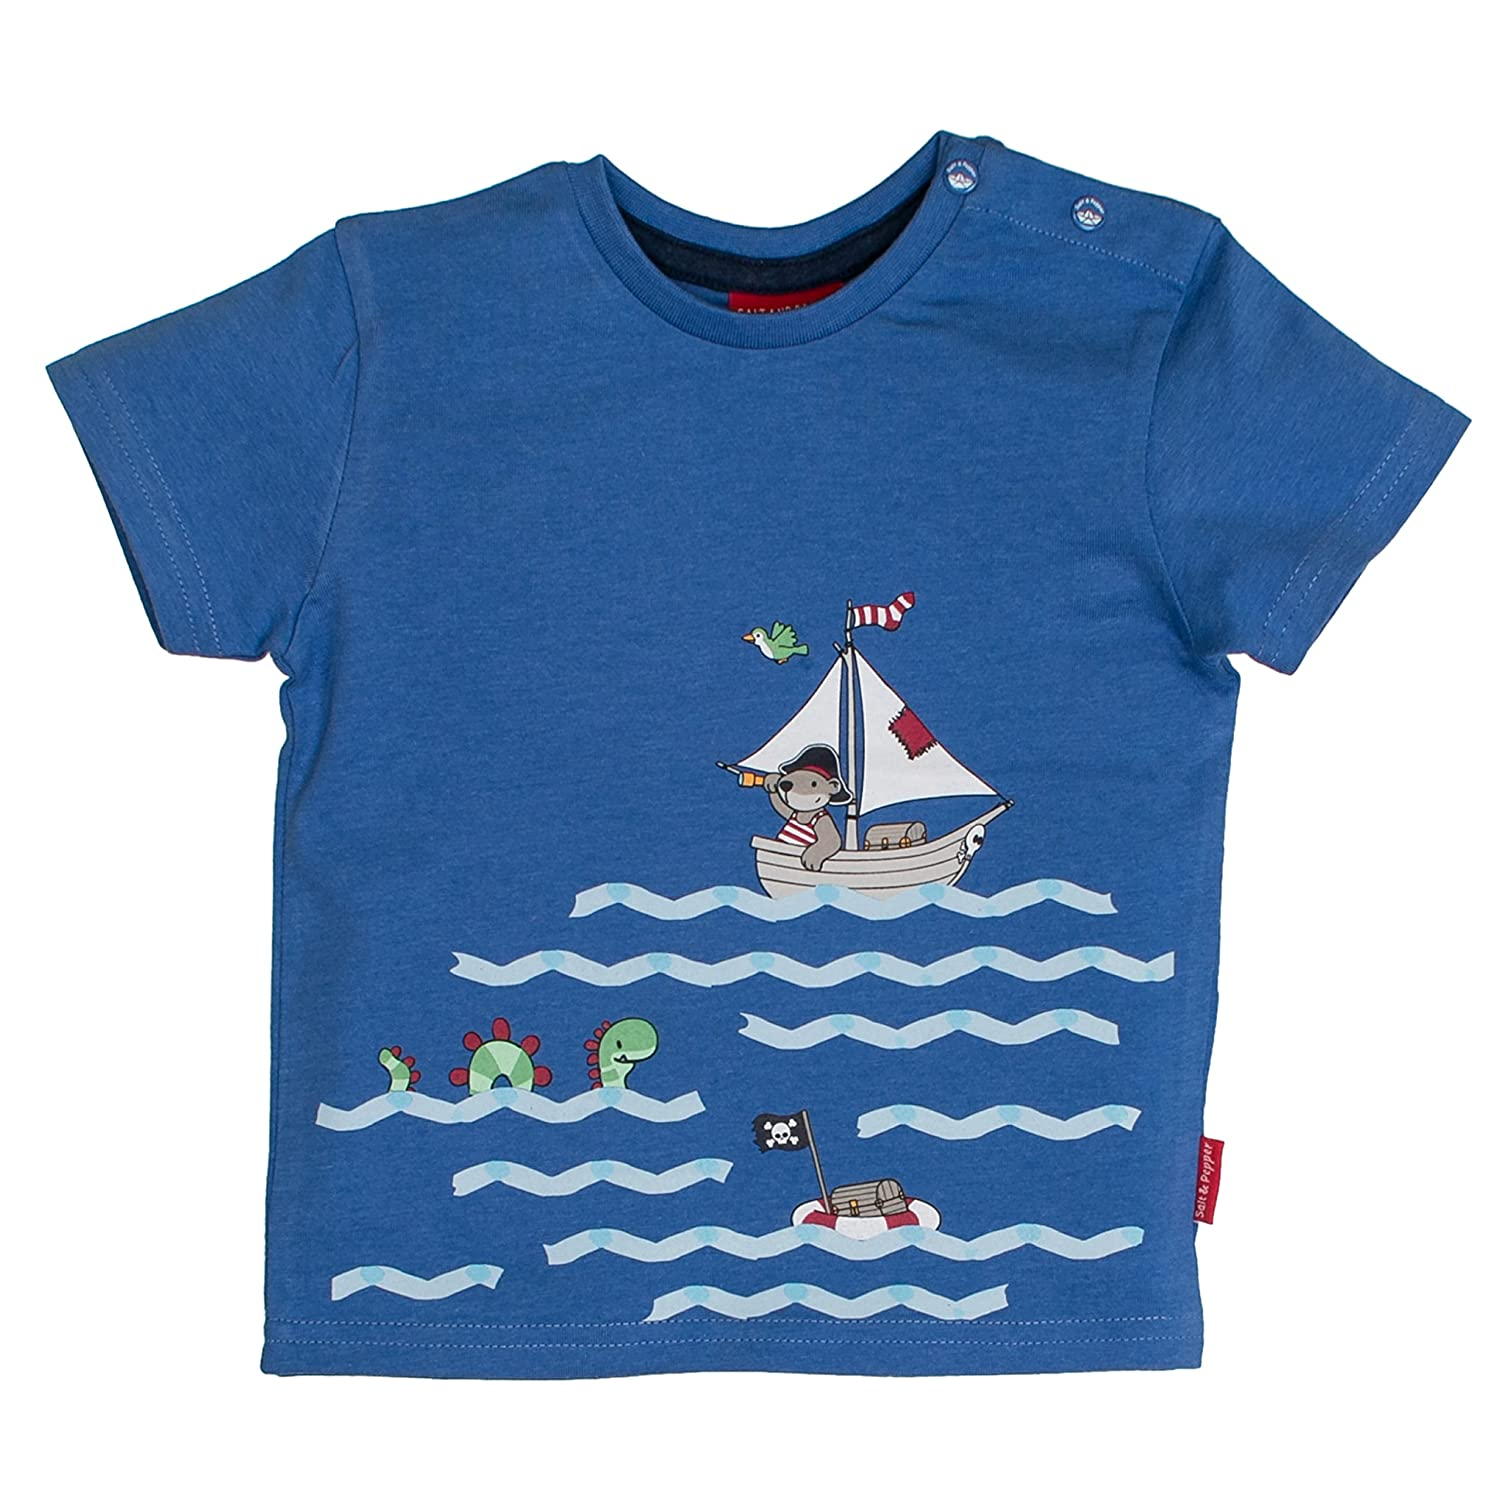 SALT AND PEPPER Baby-Jungen B T-Shirt Pirat Uni Print Blau (Blue Melange 448) 68 83212134